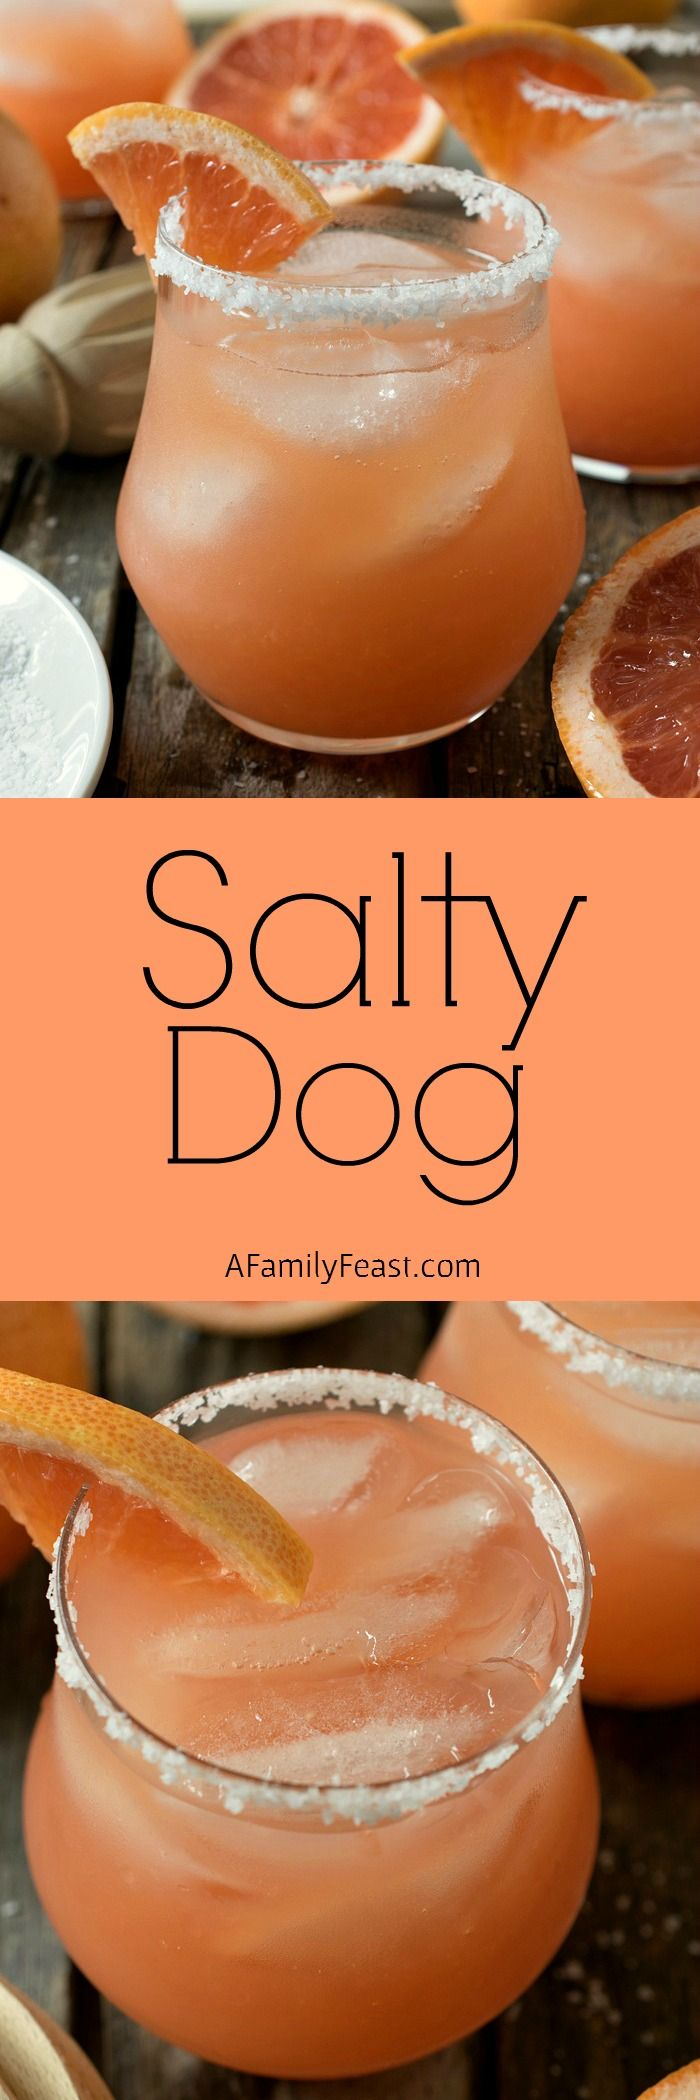 Salty Dog - A delicious cocktail made with grapefruit juice, vodka or gin, and served is a salted-rimmed glass.